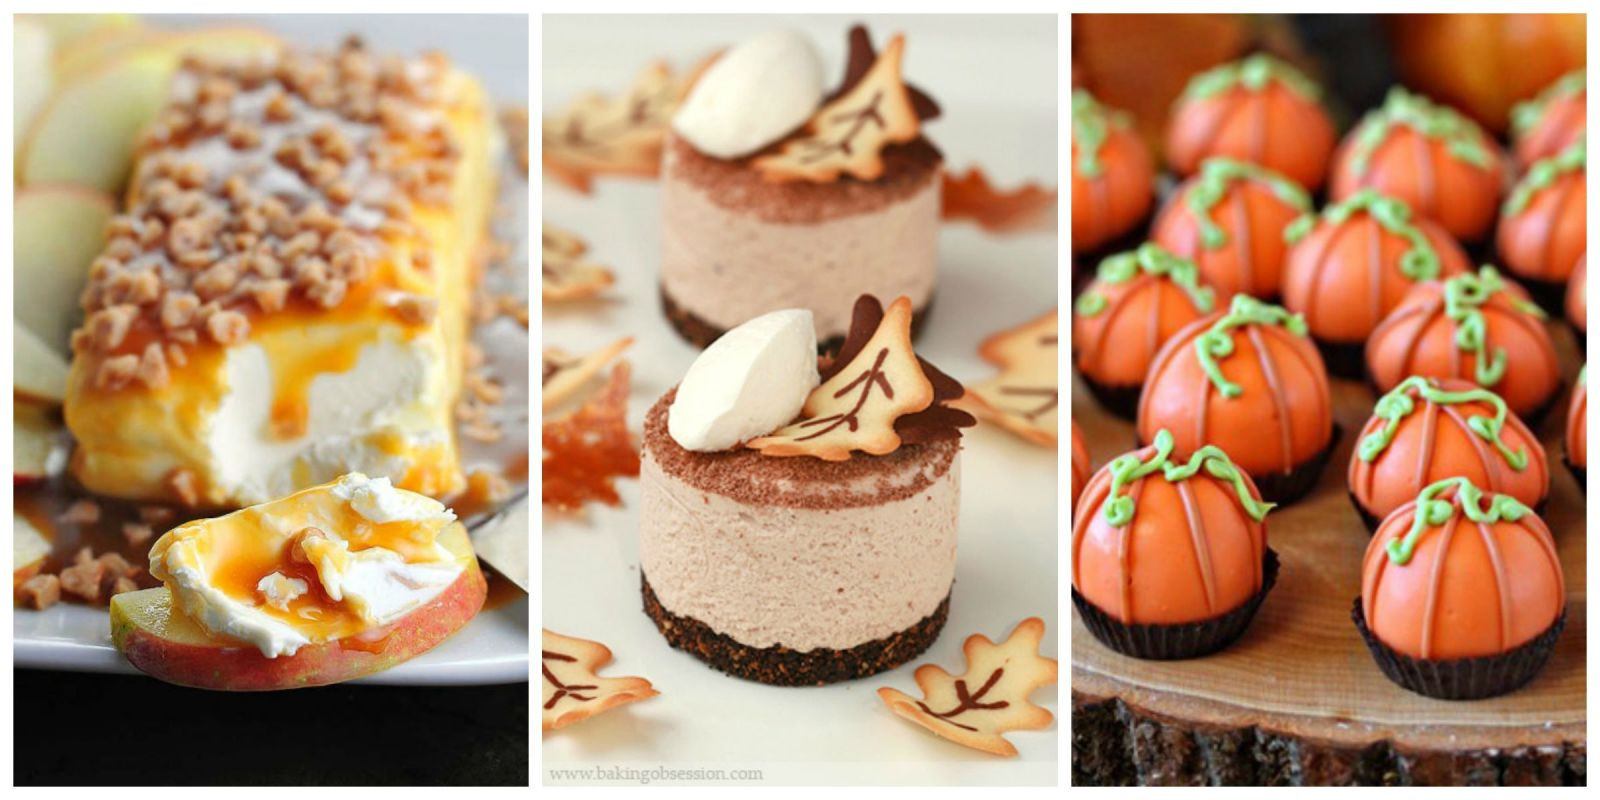 Easy Party Desserts  35 Easy Fall Dessert Recipes Best Treats for Autumn Parties